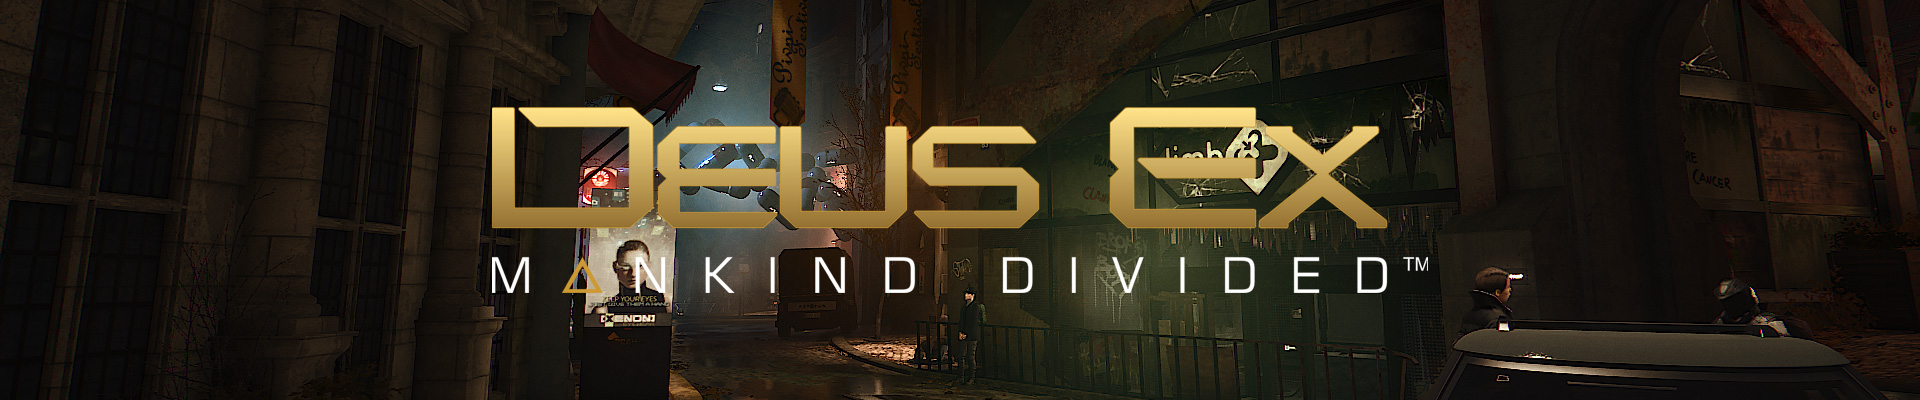 Thoughts on: Deus Ex: Mankind Divided (with DLCs)